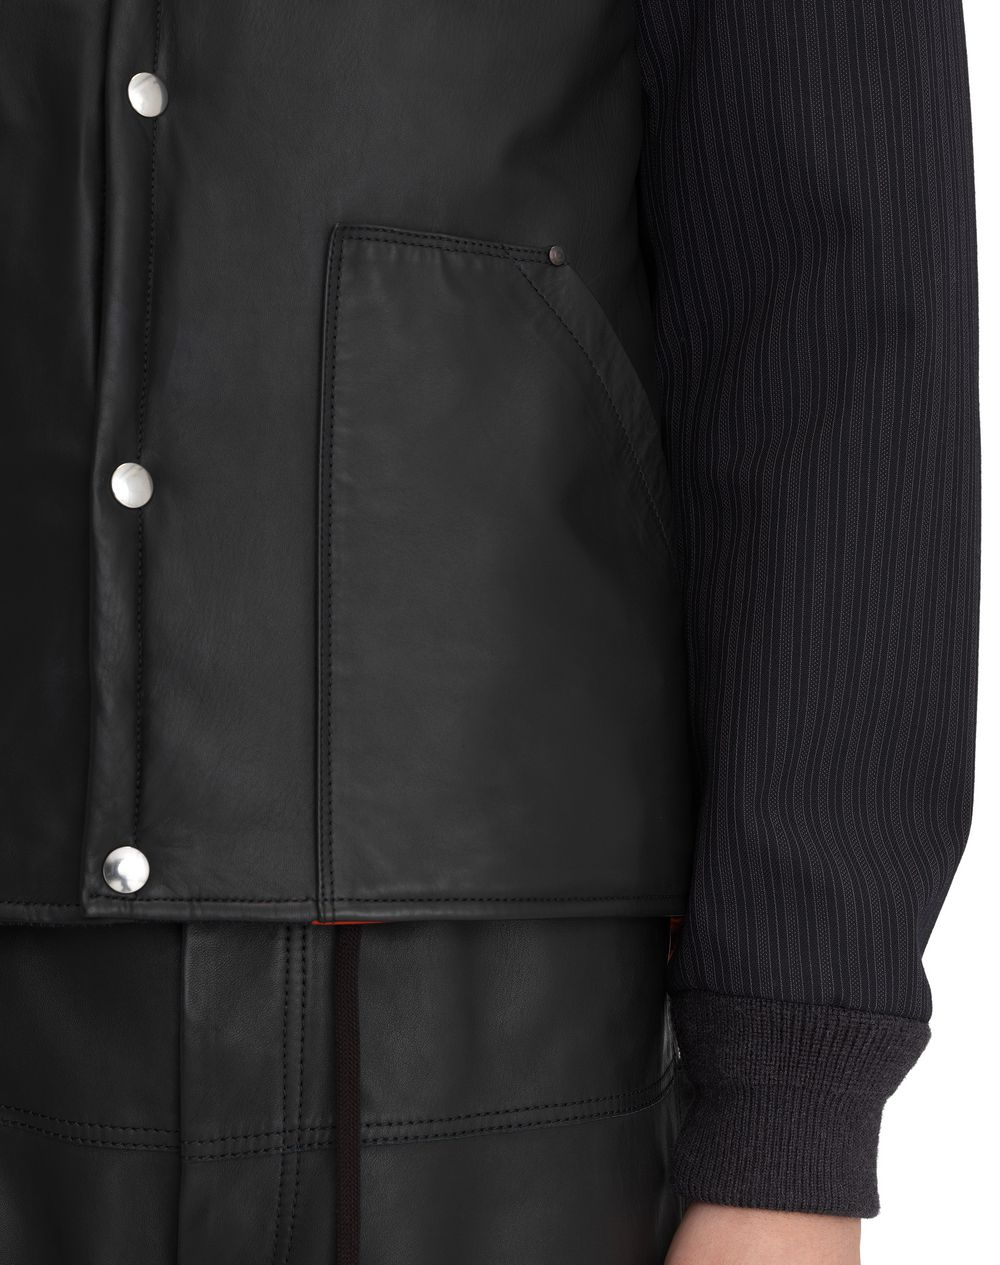 MATTE BLACK LAMBSKIN LEATHER JACKET - Lanvin